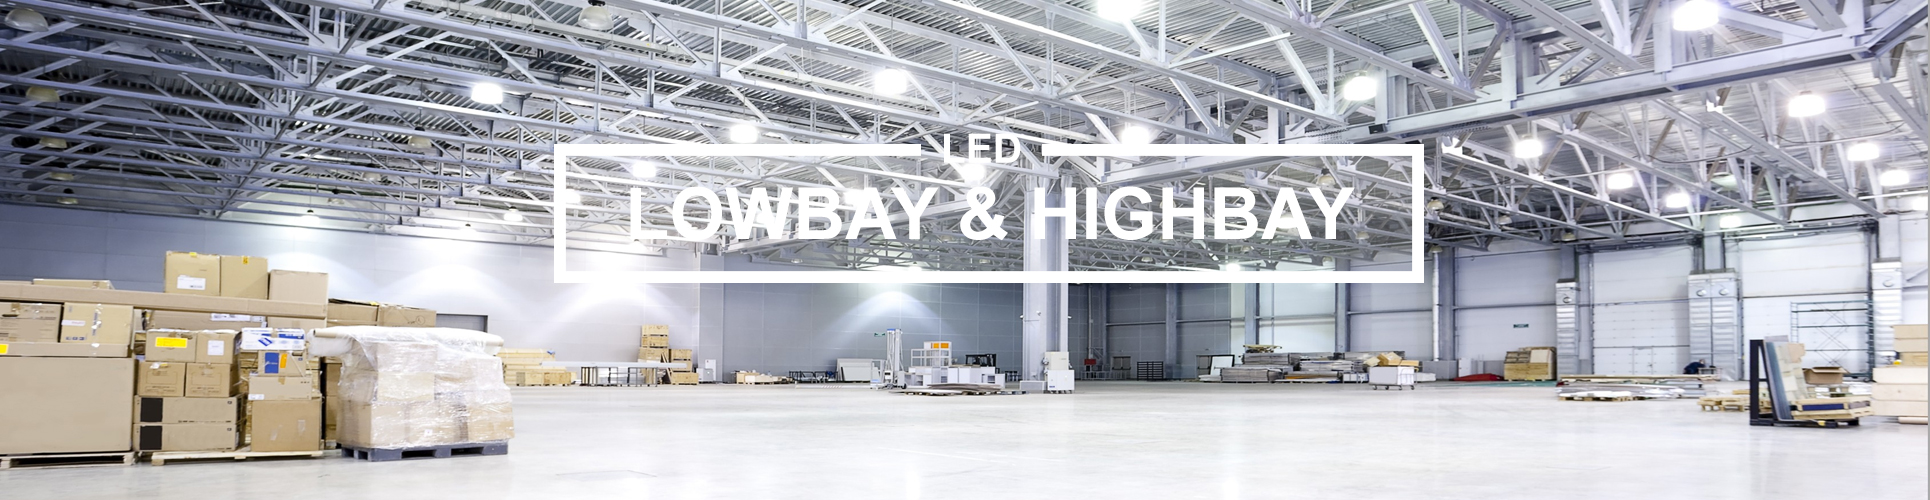 Lowbay & highbay lighting